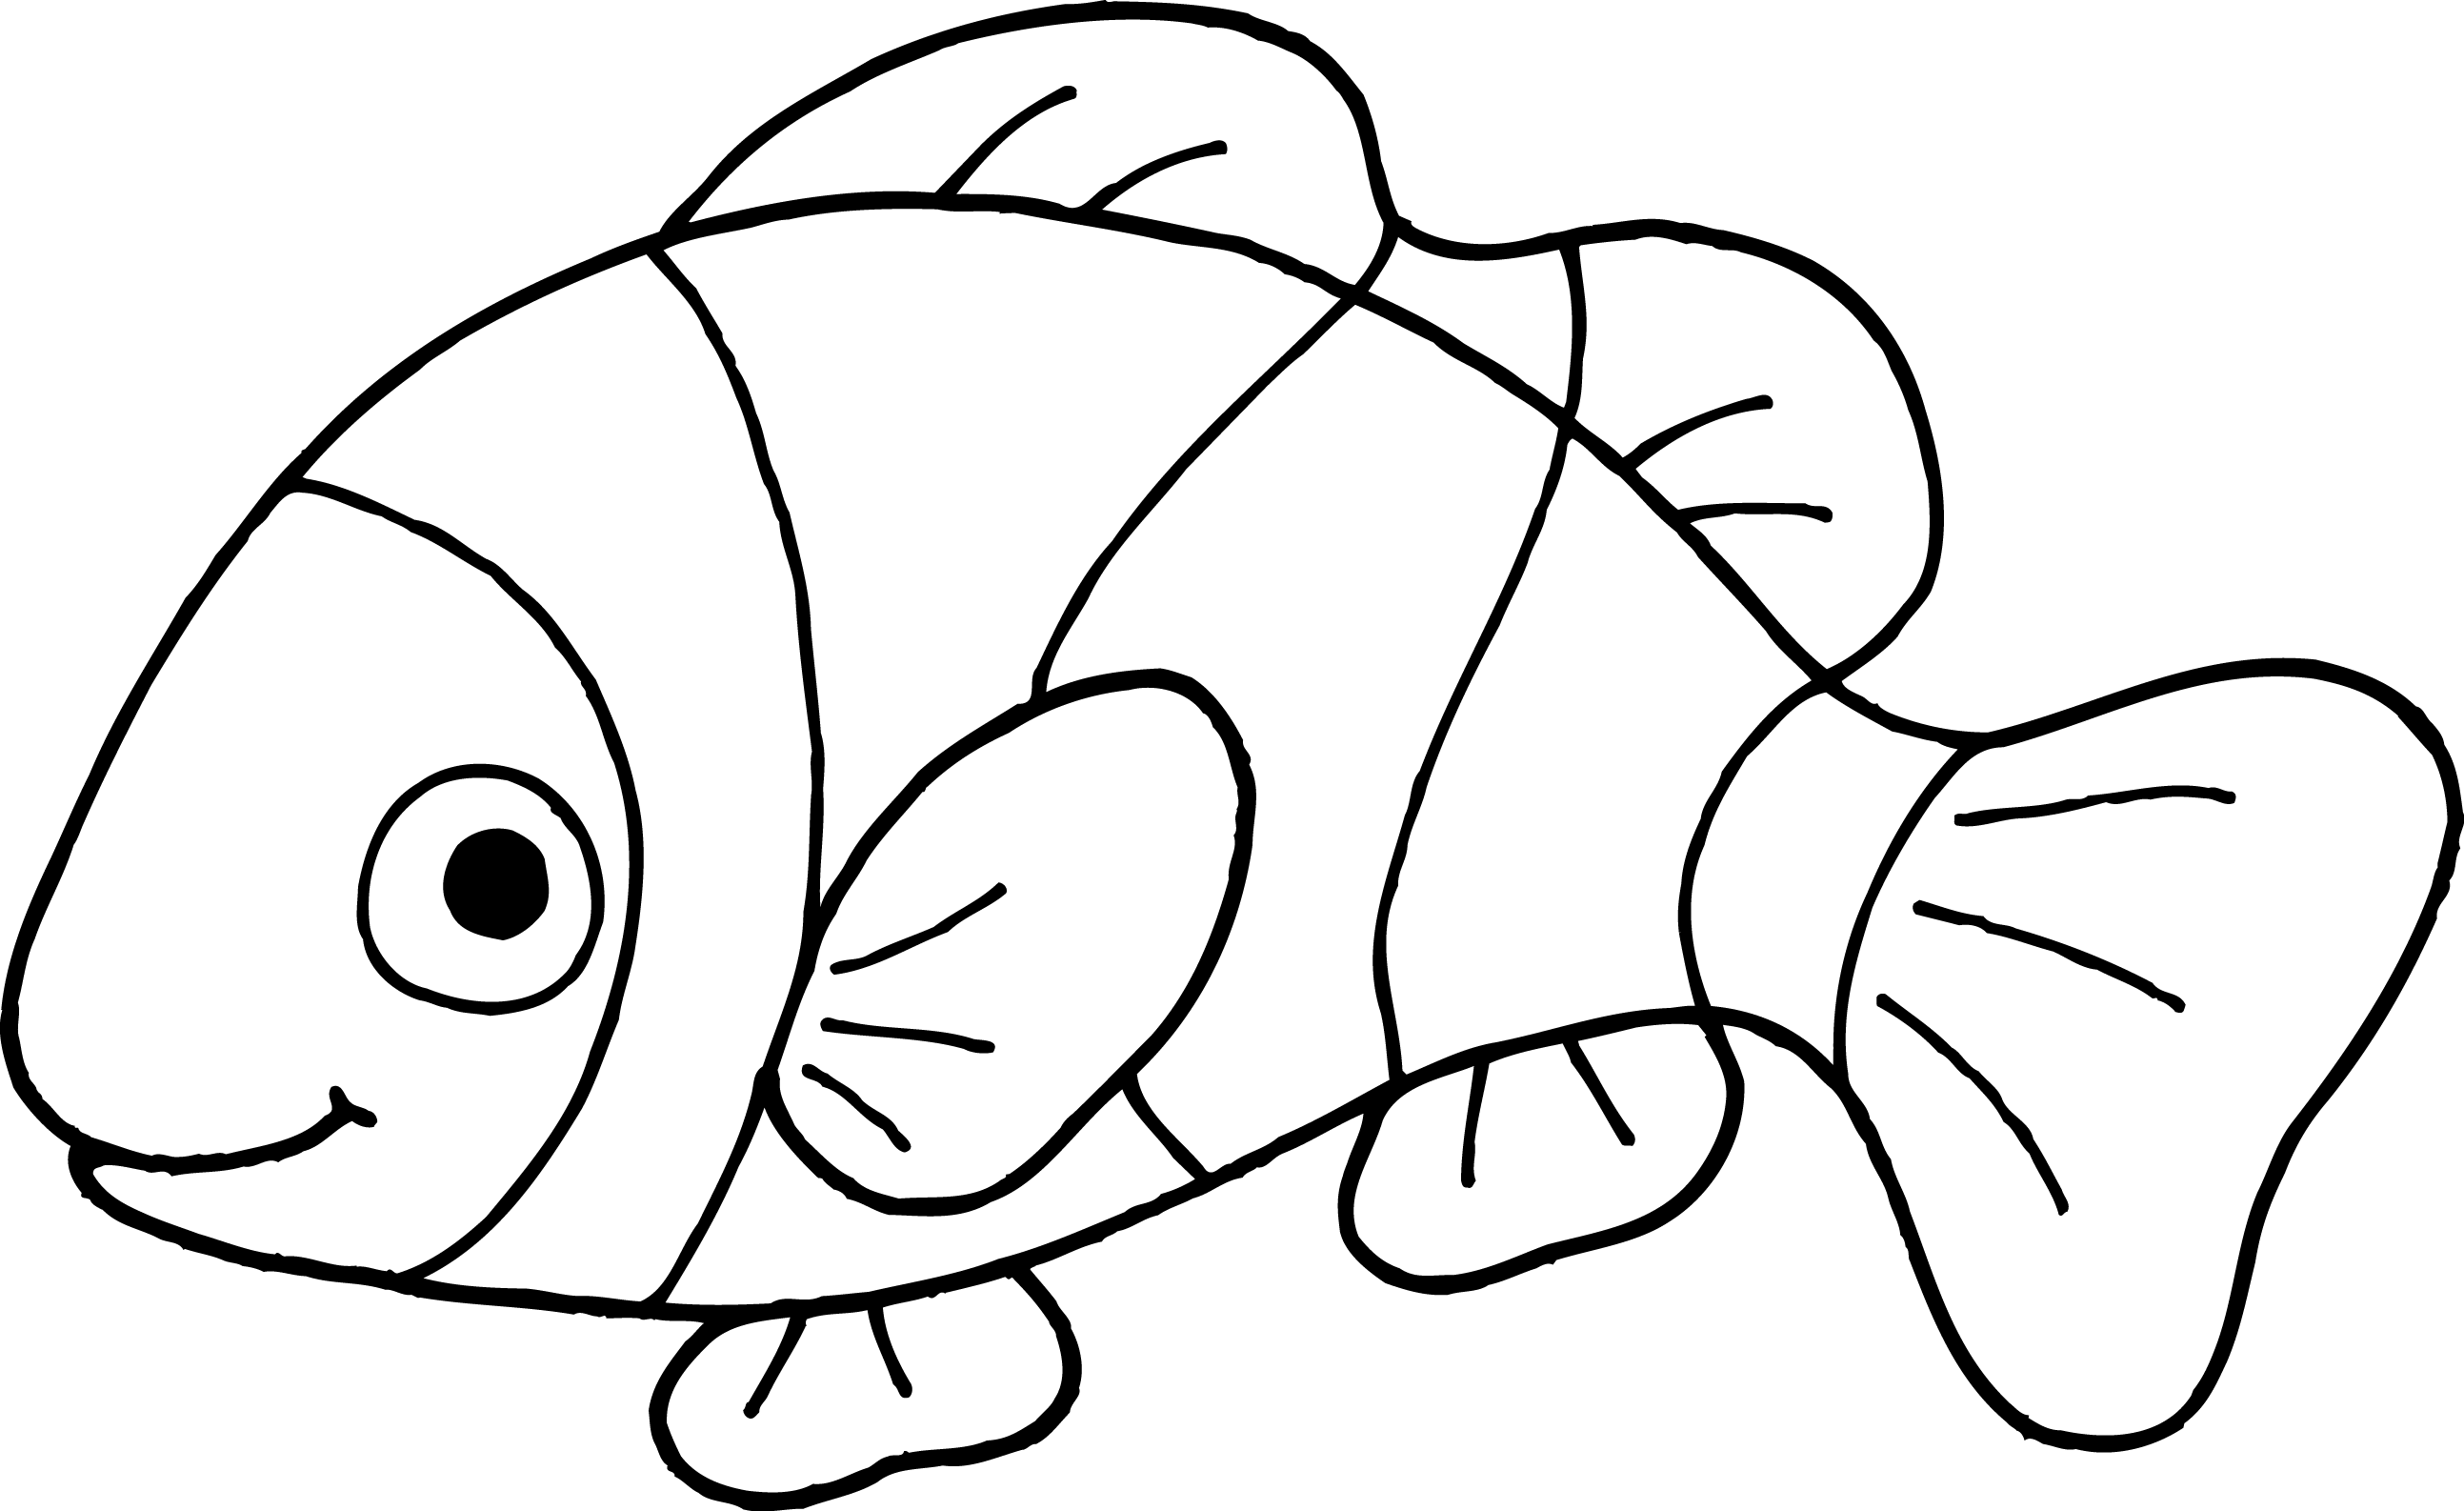 Tropical fish clipart black and white clip black and white download Black-and-white, often abbreviated B/W or B&W, is a term referring ... clip black and white download